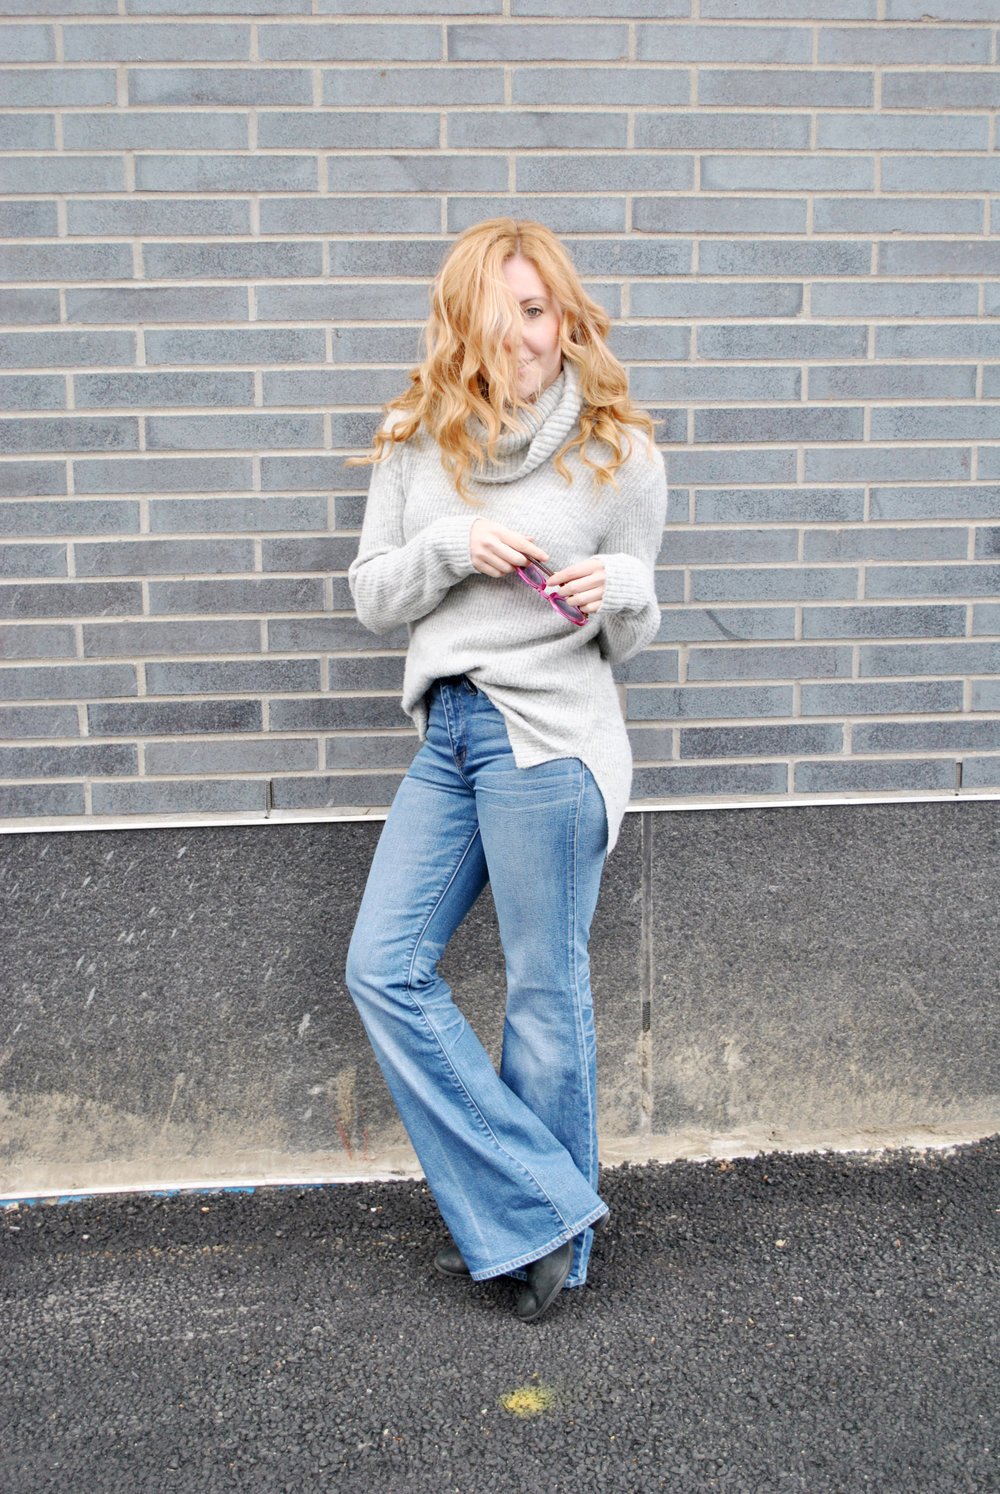 thoughtfulwish | flea market jeans, madewell, asos, comfy chic, cashmere, half-tuck, denim, bosbloggers, street style, meredith wish